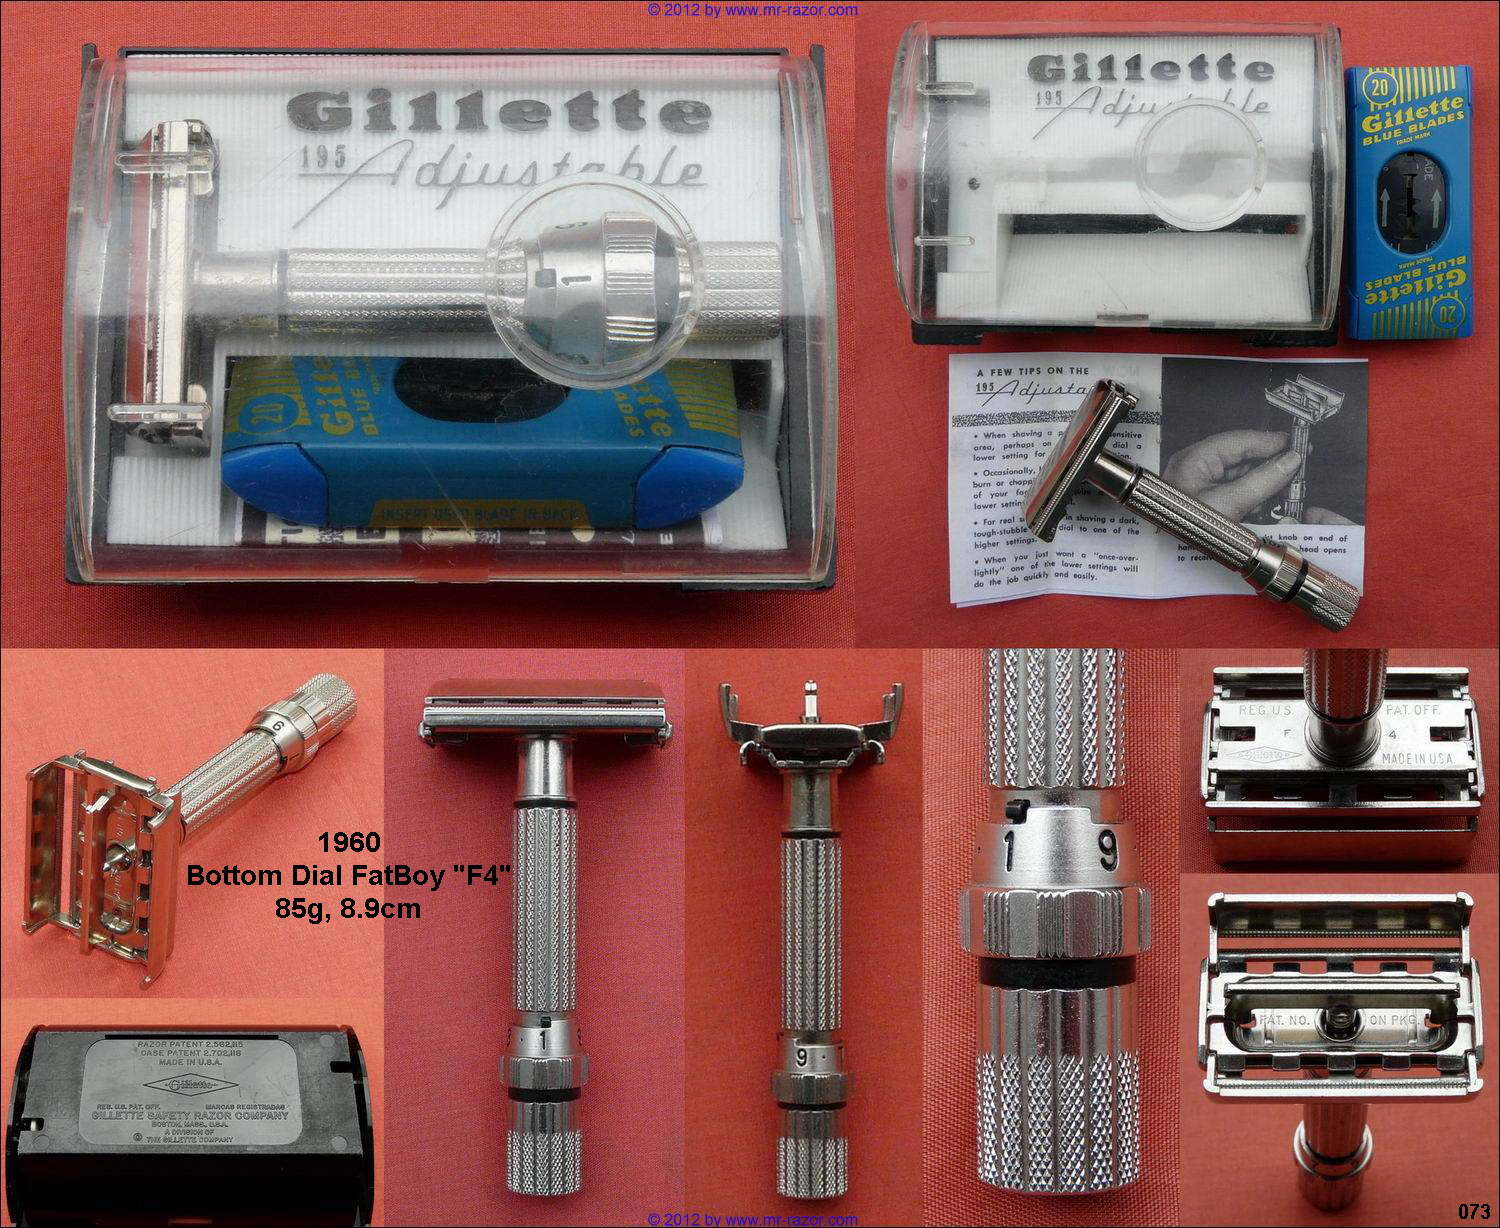 Gillette Ajustable Fatboy 2010 - Page 5 1960%20(F4)%20Bottom%20Dial%20FatBoy